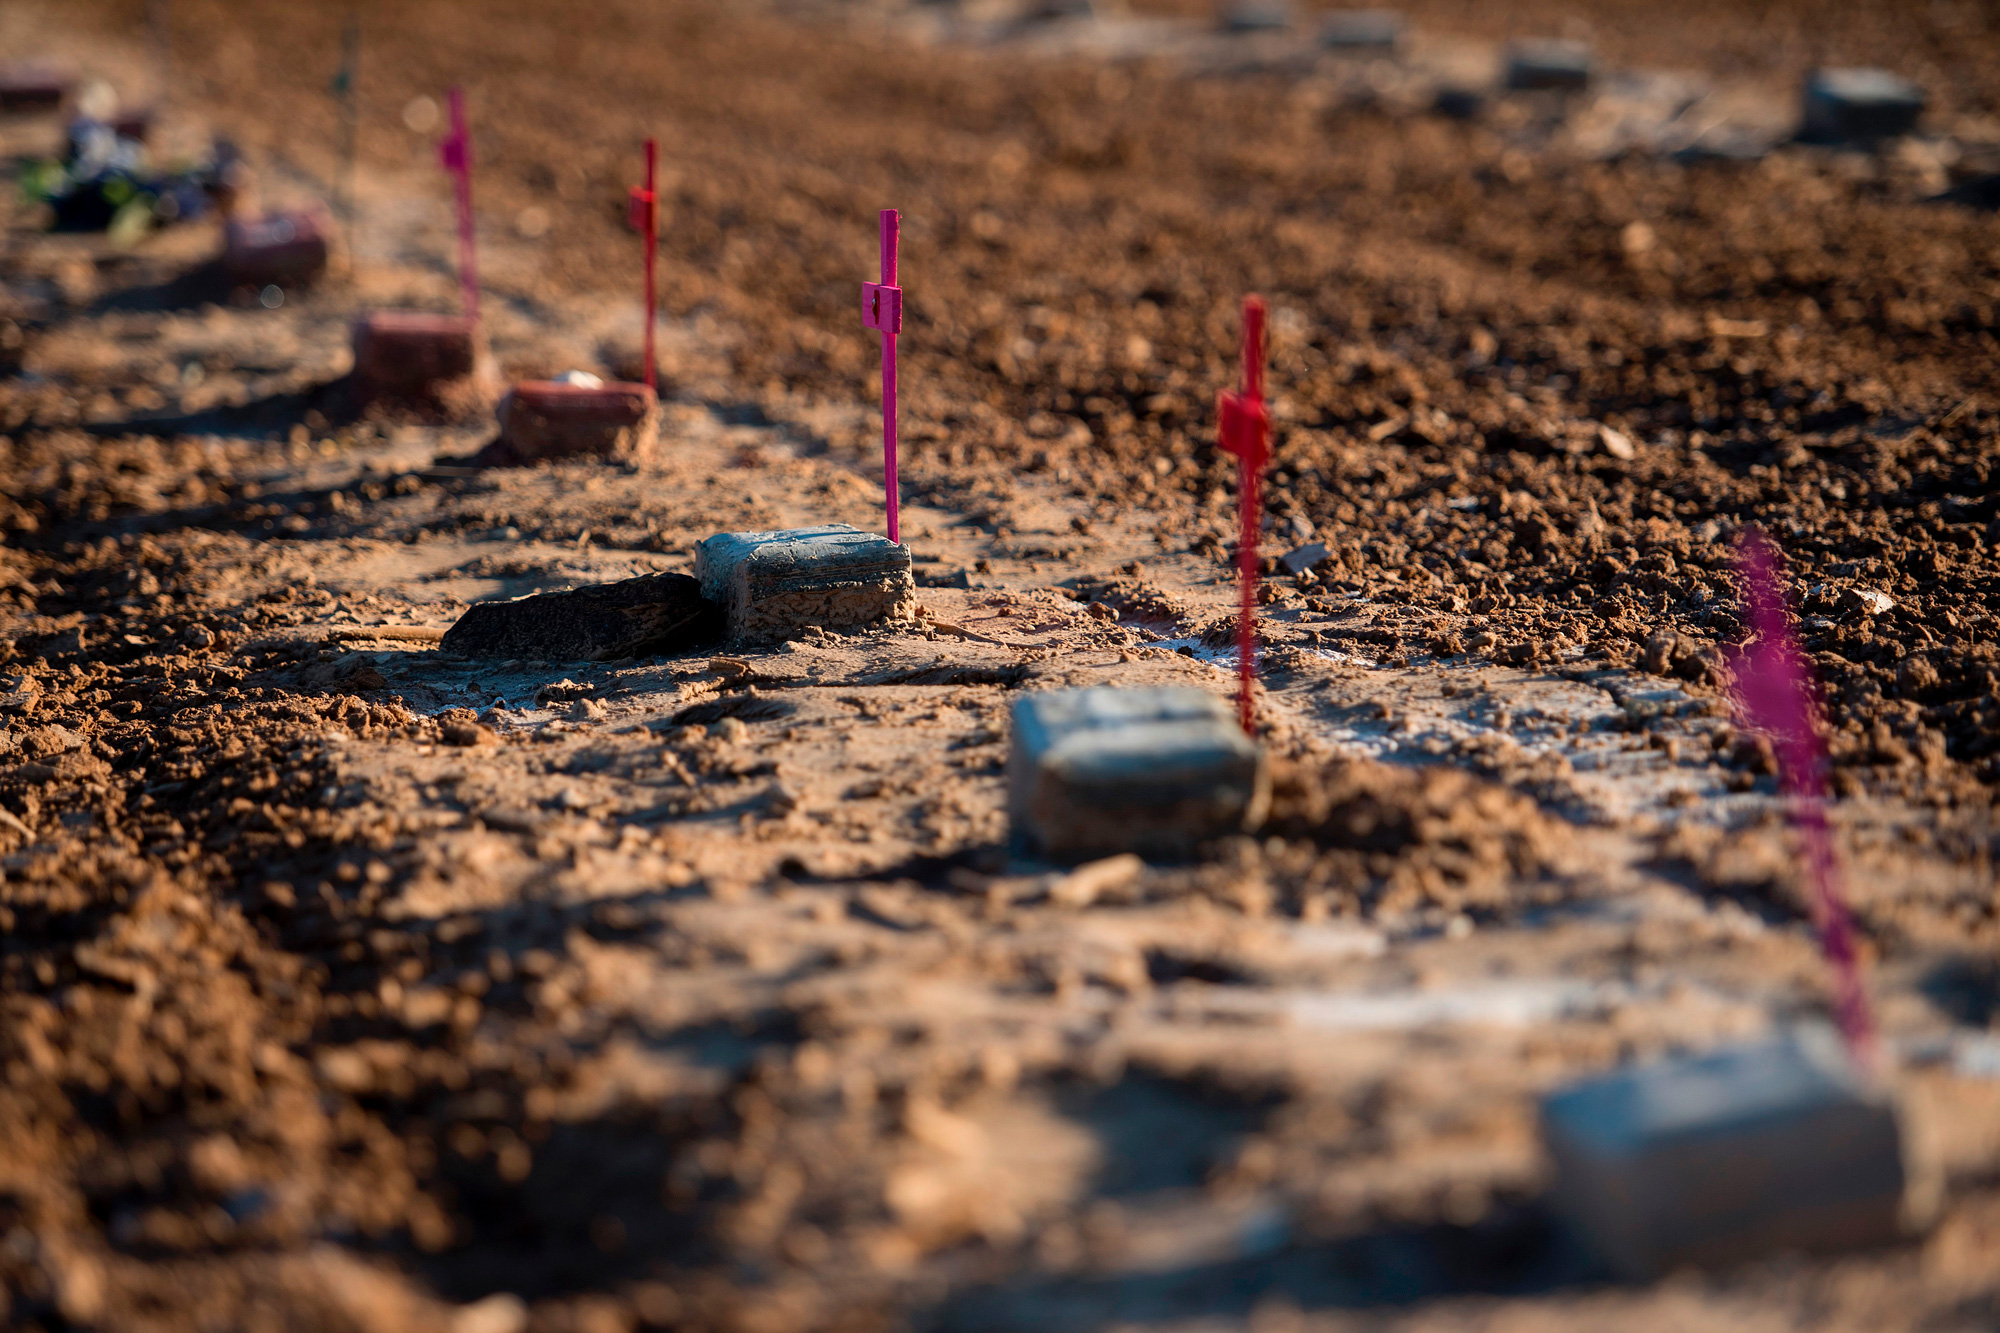 """TOPSHOT - Bricks inscribed with the words """"John Doe"""" lie in an unmarked dirt lot at the end of Terrace Park Cemetery in Holtville, California on February 14, 2017, where the remains of hundreds of unidentified migrants are buried.  Attention Editors, this image is part of an ongoing AFP photo project documenting the life on the two sides of the US/Mexico border simultaneously by two photographers traveling for ten days from California to Texas on the US side and from Baja California to Tamaulipas on the Mexican side between February 13 and 22, 2017. You can find all the images with the keyword : BORDERPROJECT2017 on our wire and on www.afpforum.com / AFP PHOTO / JIM WATSON        (Photo credit should read JIM WATSON/AFP via Getty Images)"""